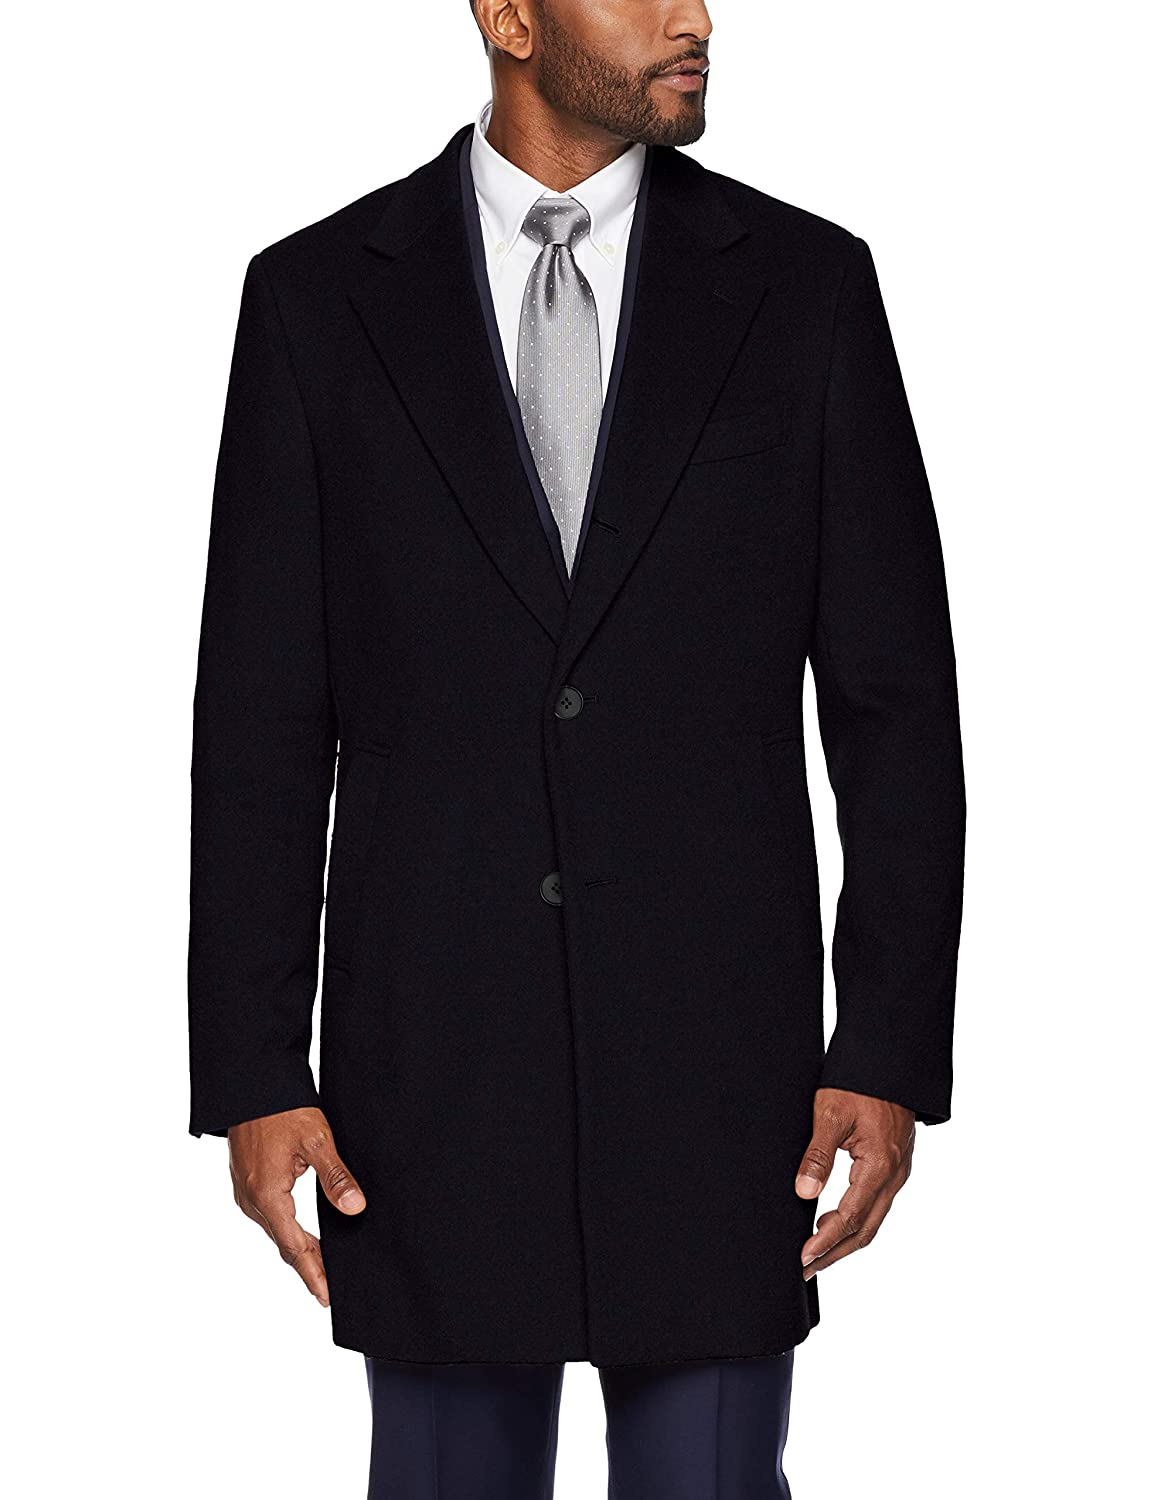 BUTTONED DOWN Mens Italian Wool Cashmere Overcoat Brand